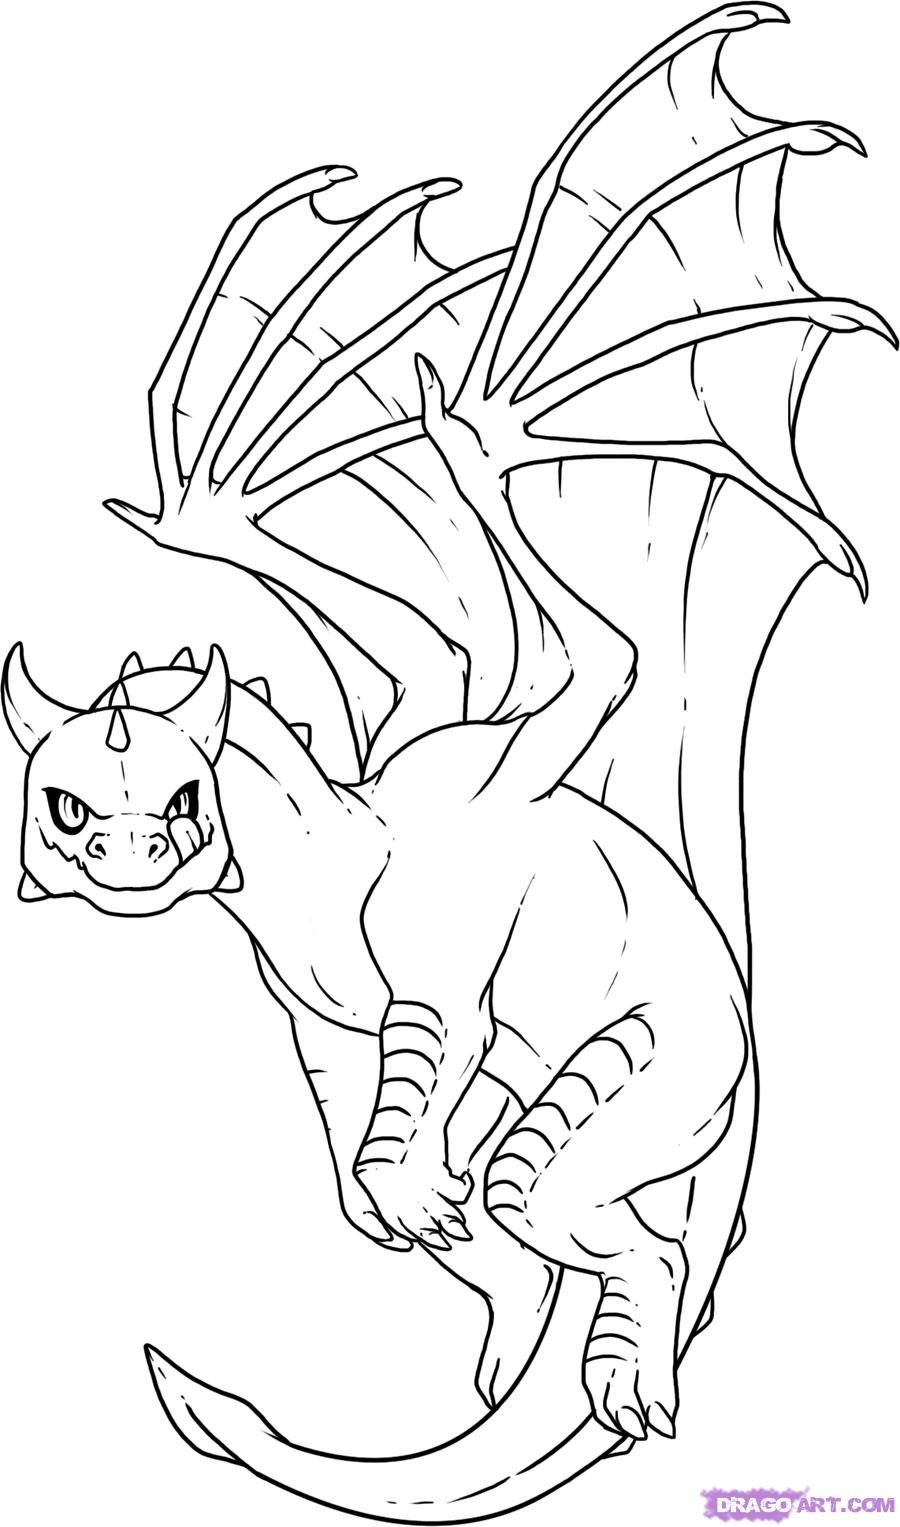 Dragon Coloring Pages How to Draw Baby Dragon, Step by